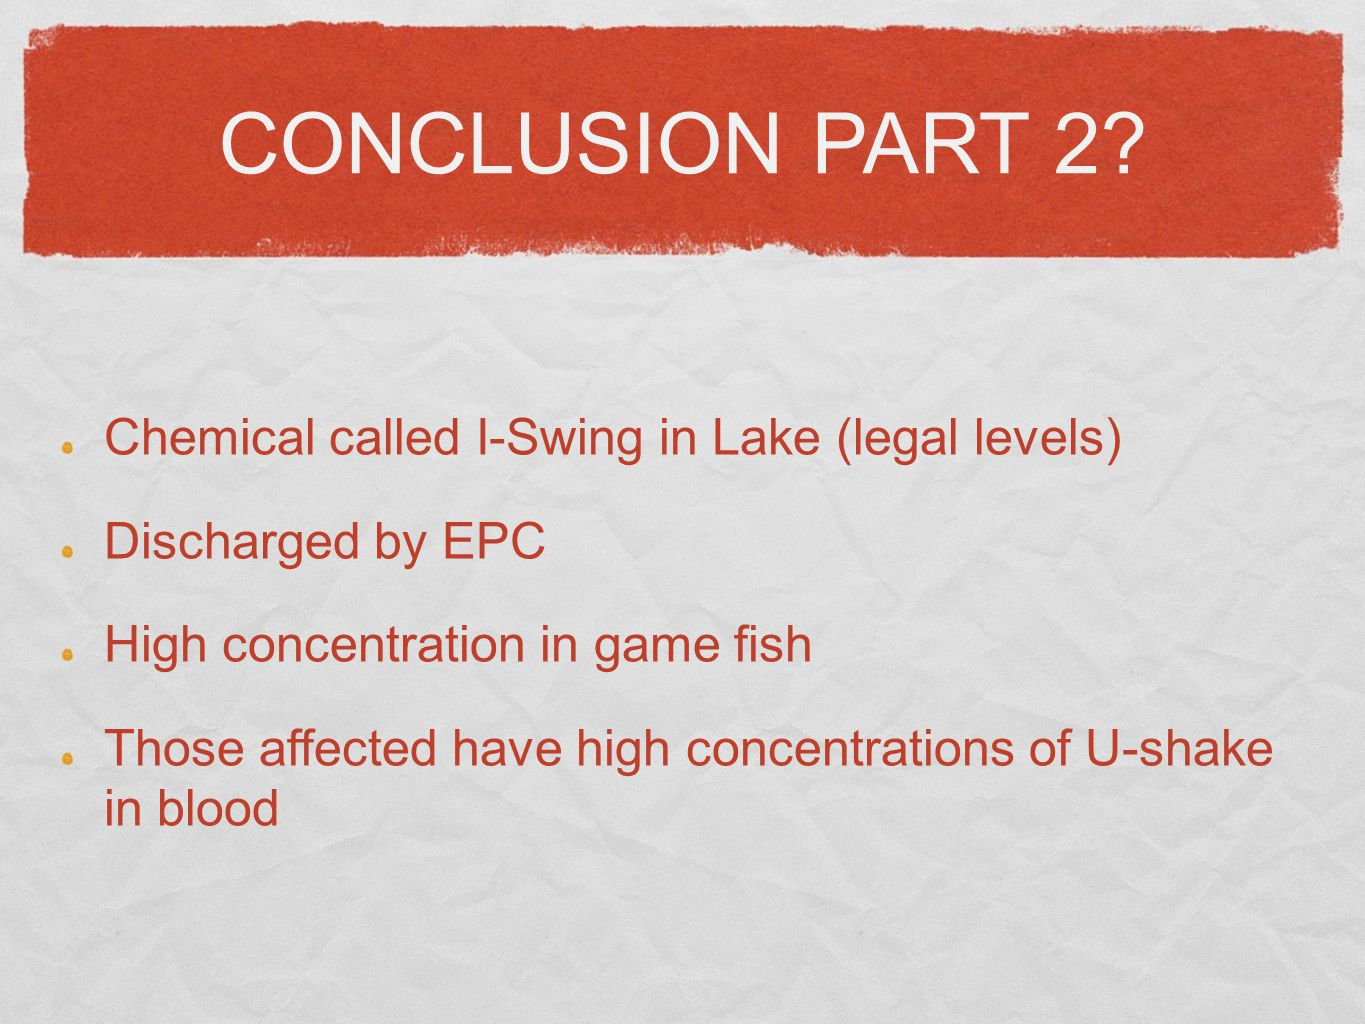 CONCLUSION PART 2 Chemical called I-Swing in Lake (legal levels)